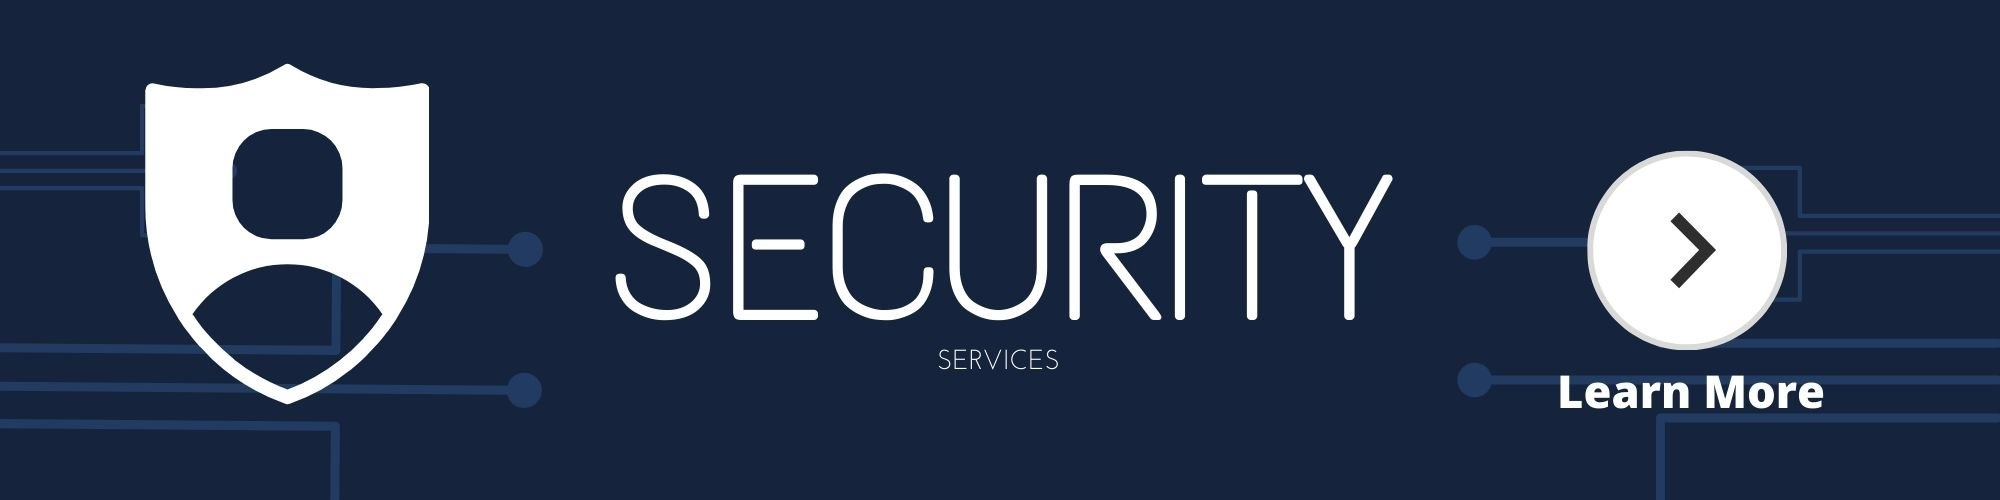 IT-security-services